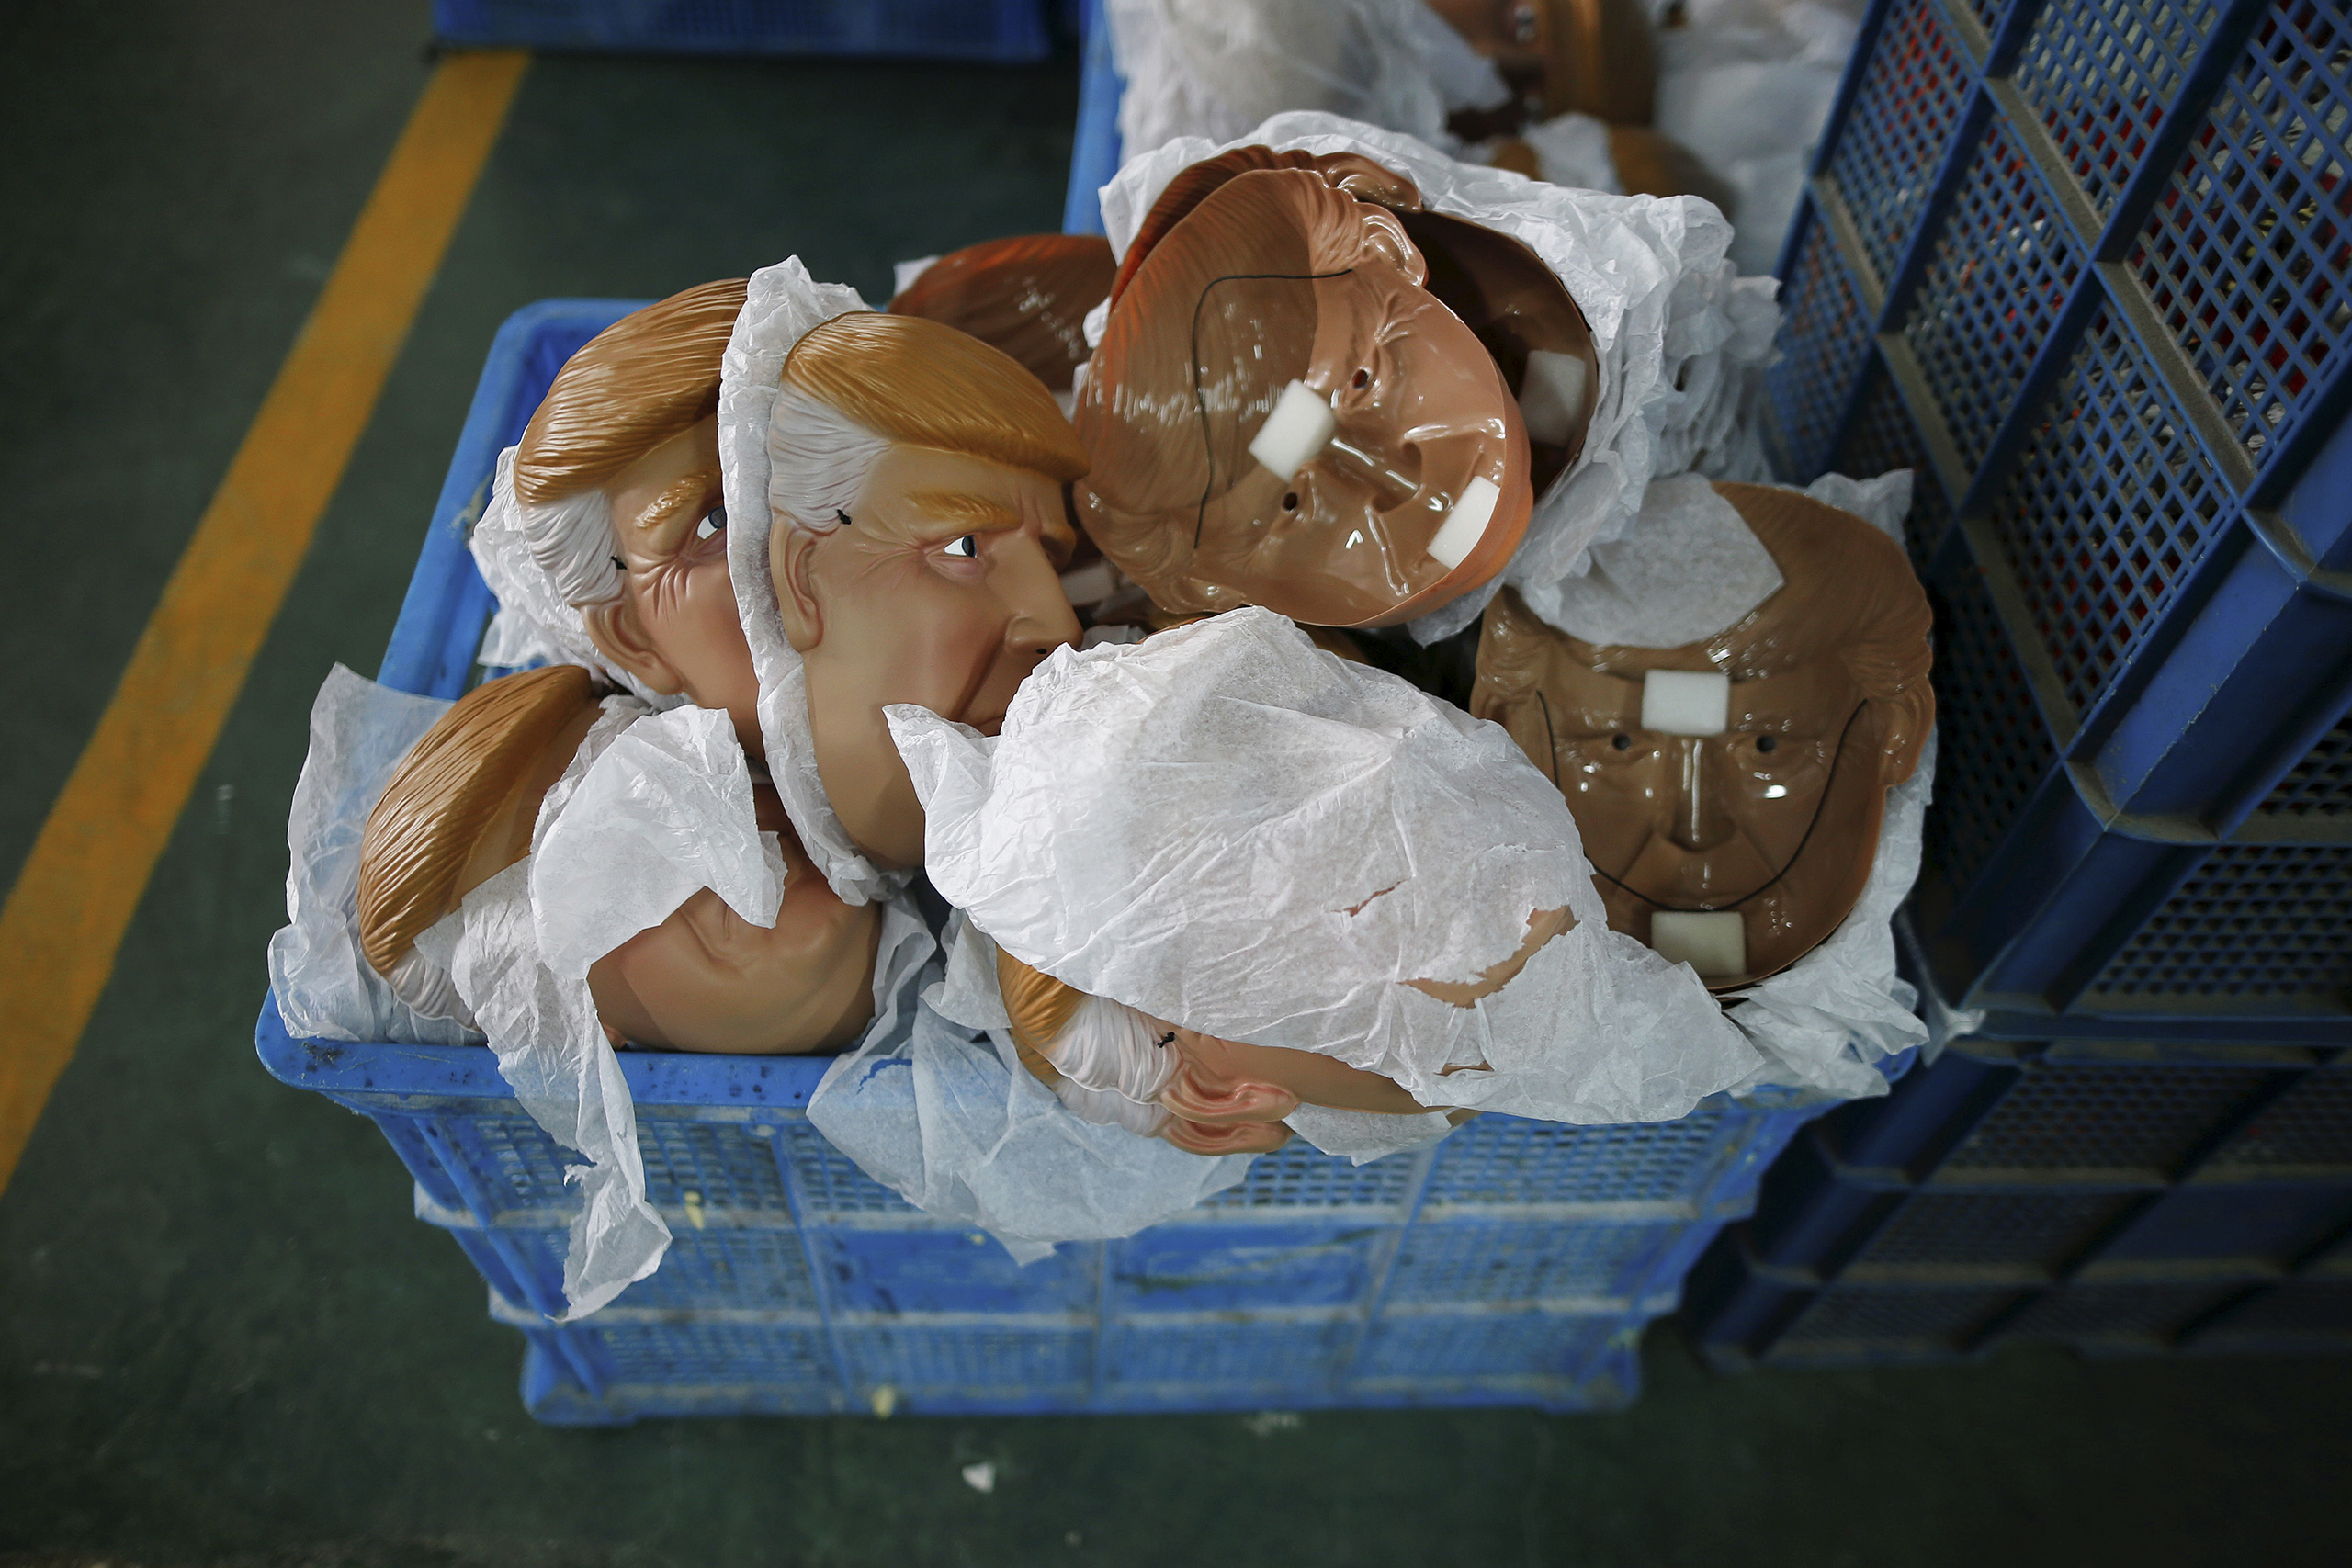 Masks of Republican presidential candidate Donald Trump lie in a box at Jinhua Partytime Latex Art and Crafts Factory in Jinhua, Zhejiang Province, China, May 25, 2016.